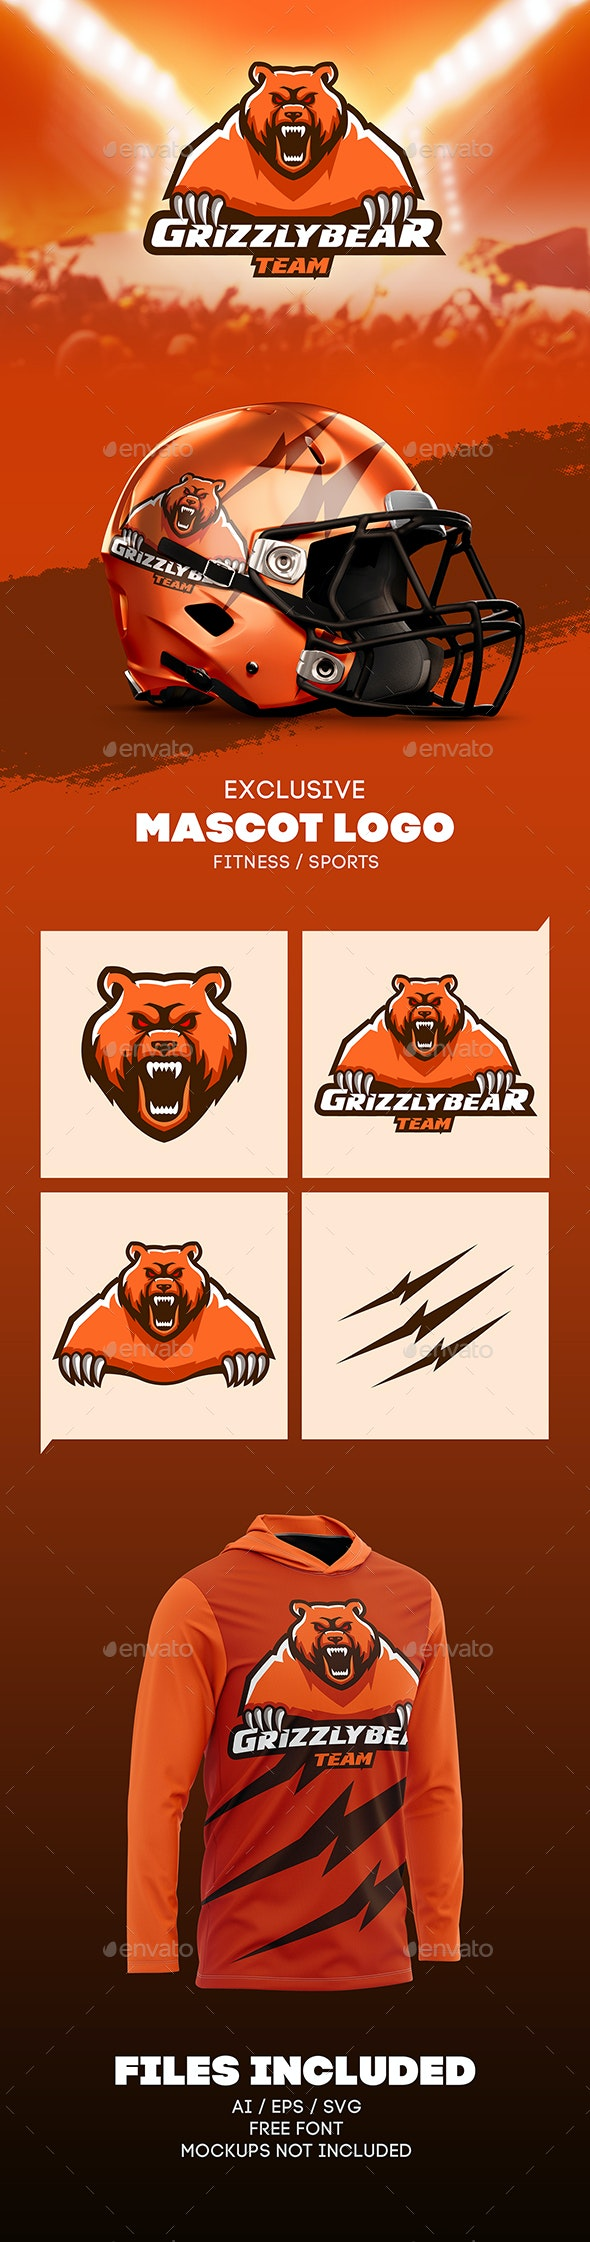 Grizzly Bear Mascot Logo - Logo Templates